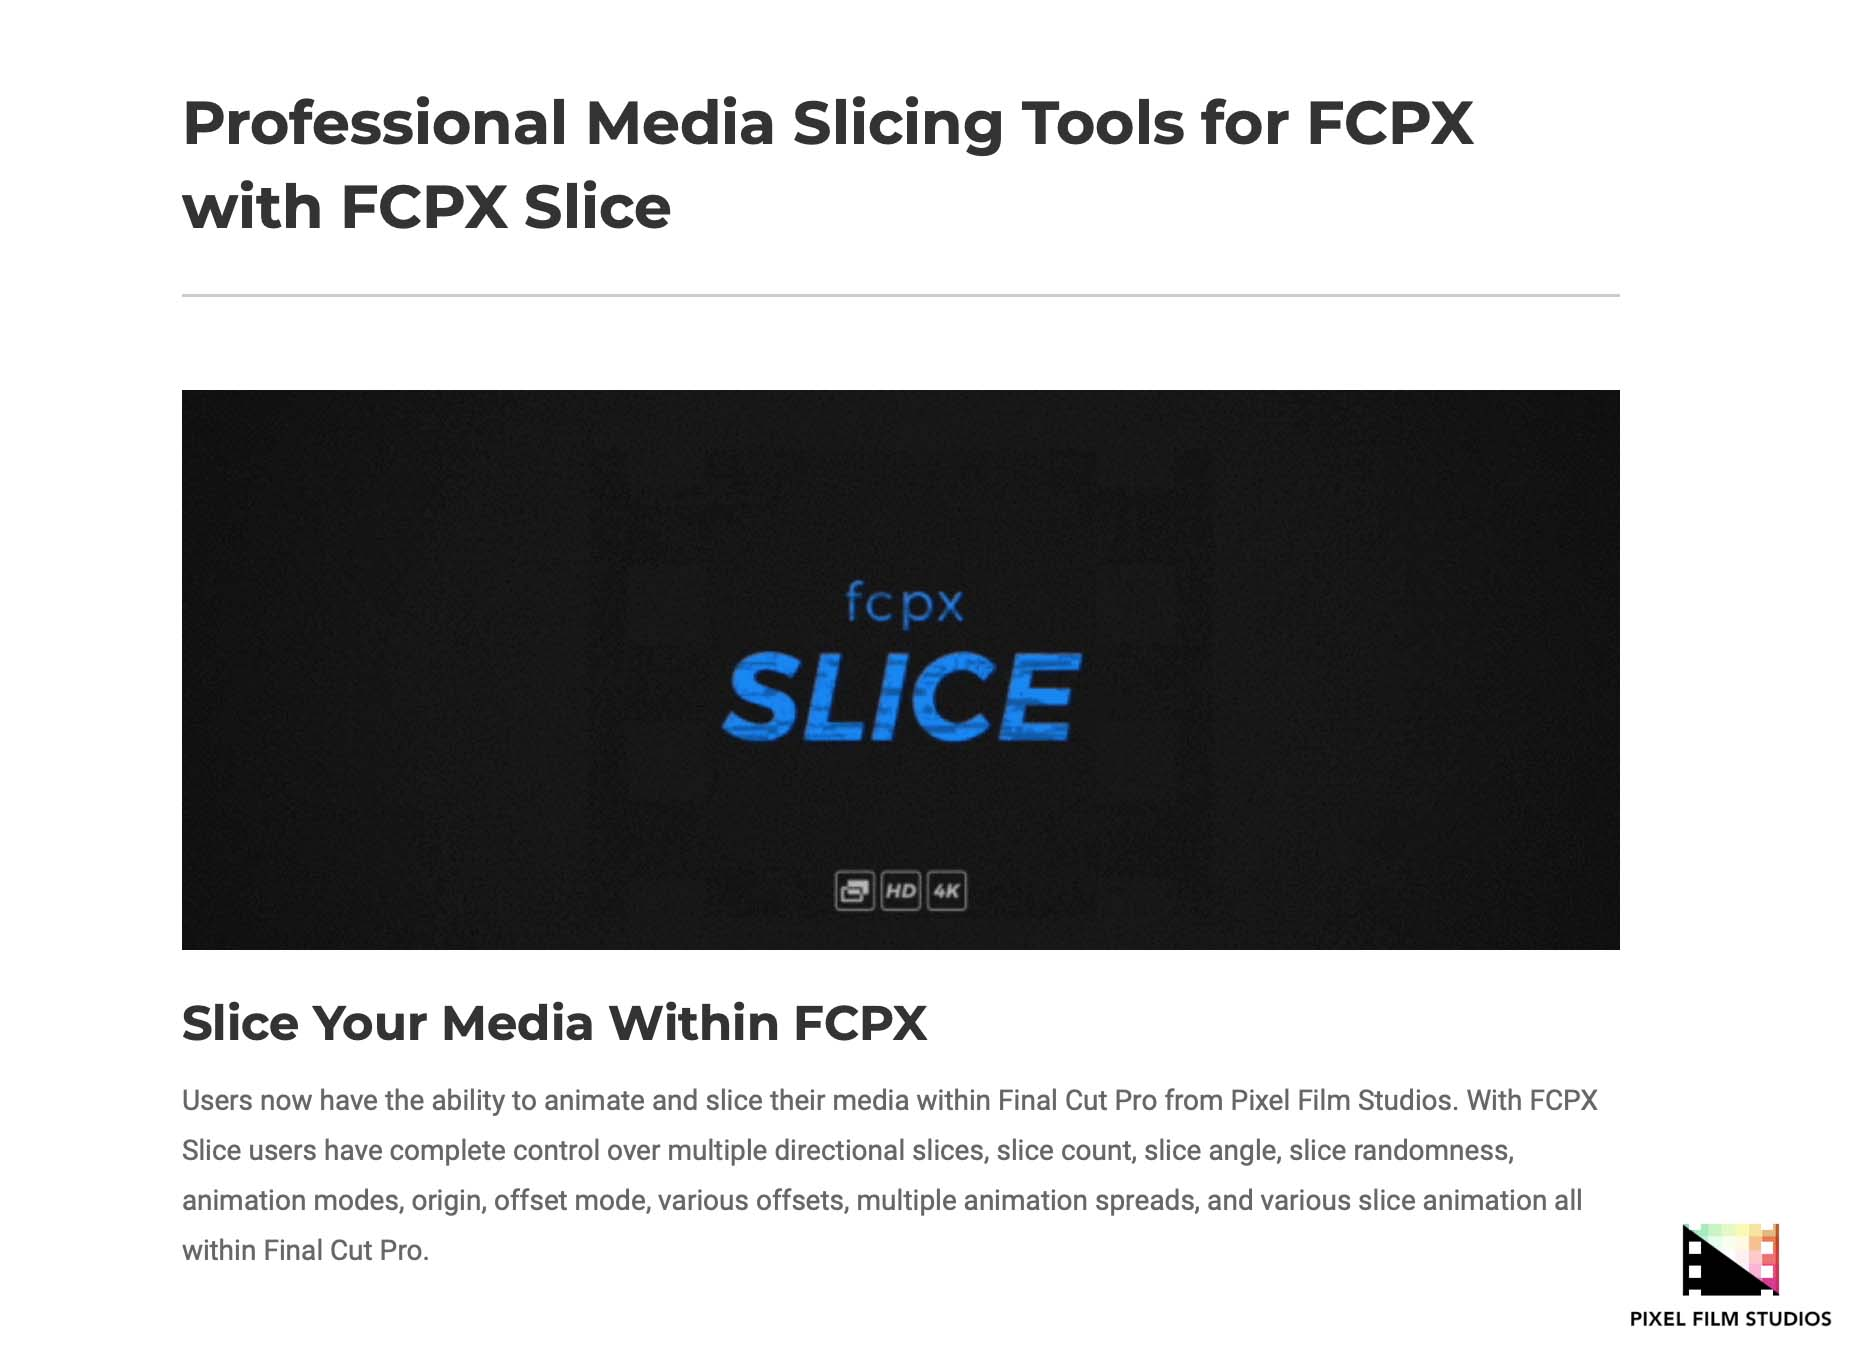 Developers at Pixel Film Studios Announce FCPX Slice for